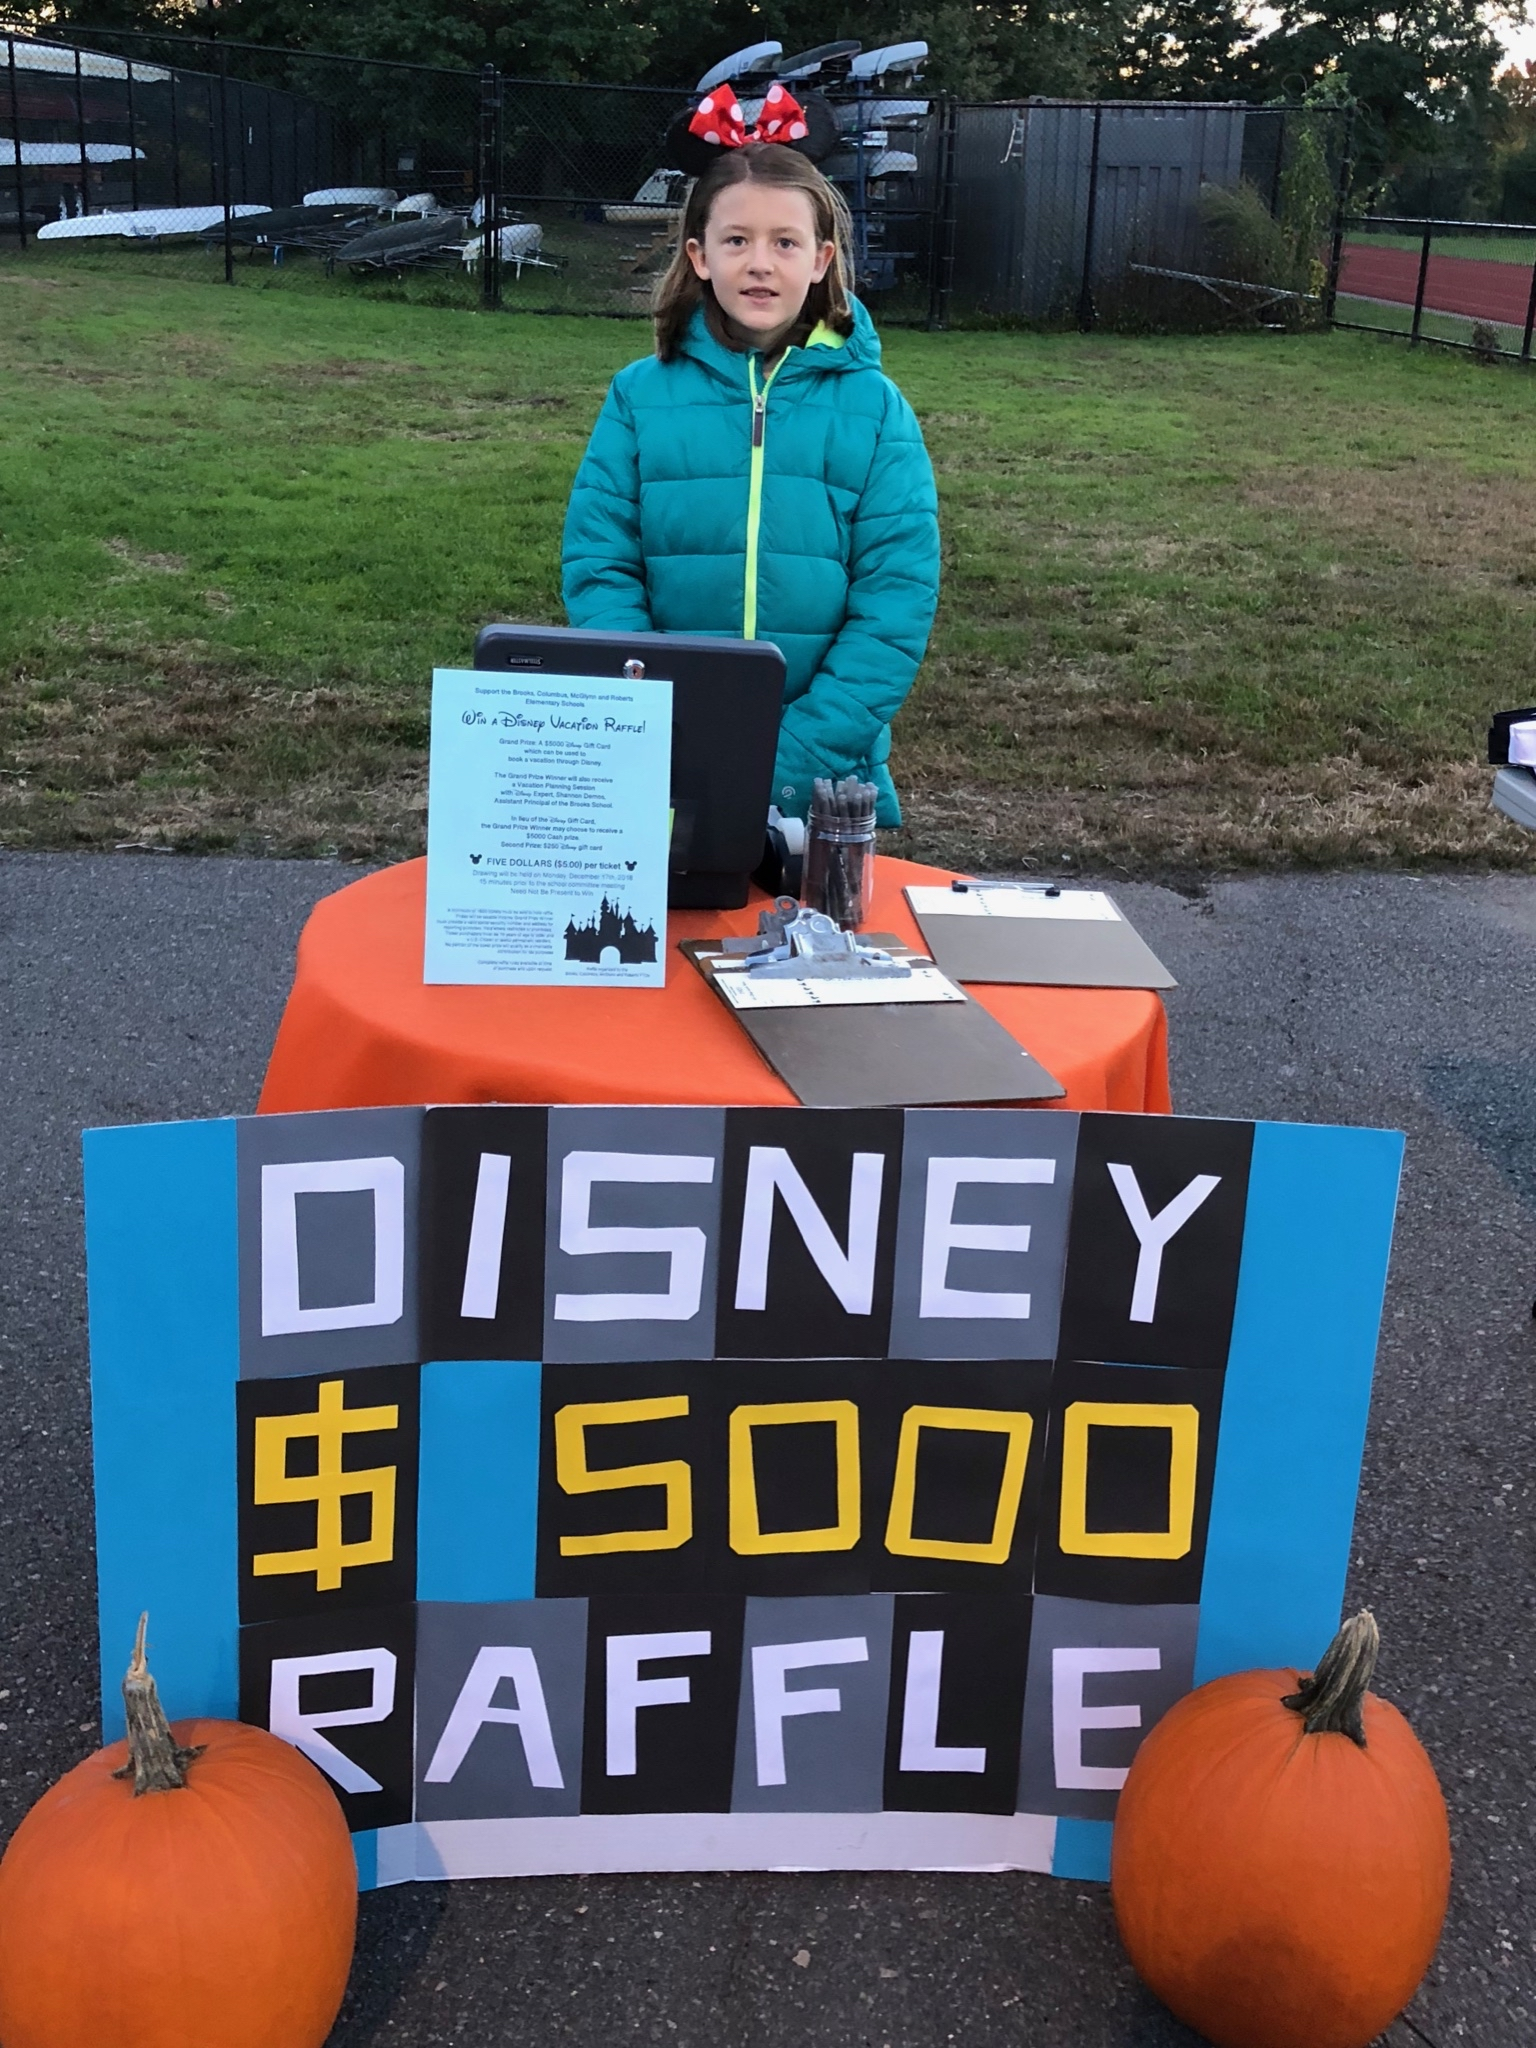 Get your Disney Raffle Tickets!